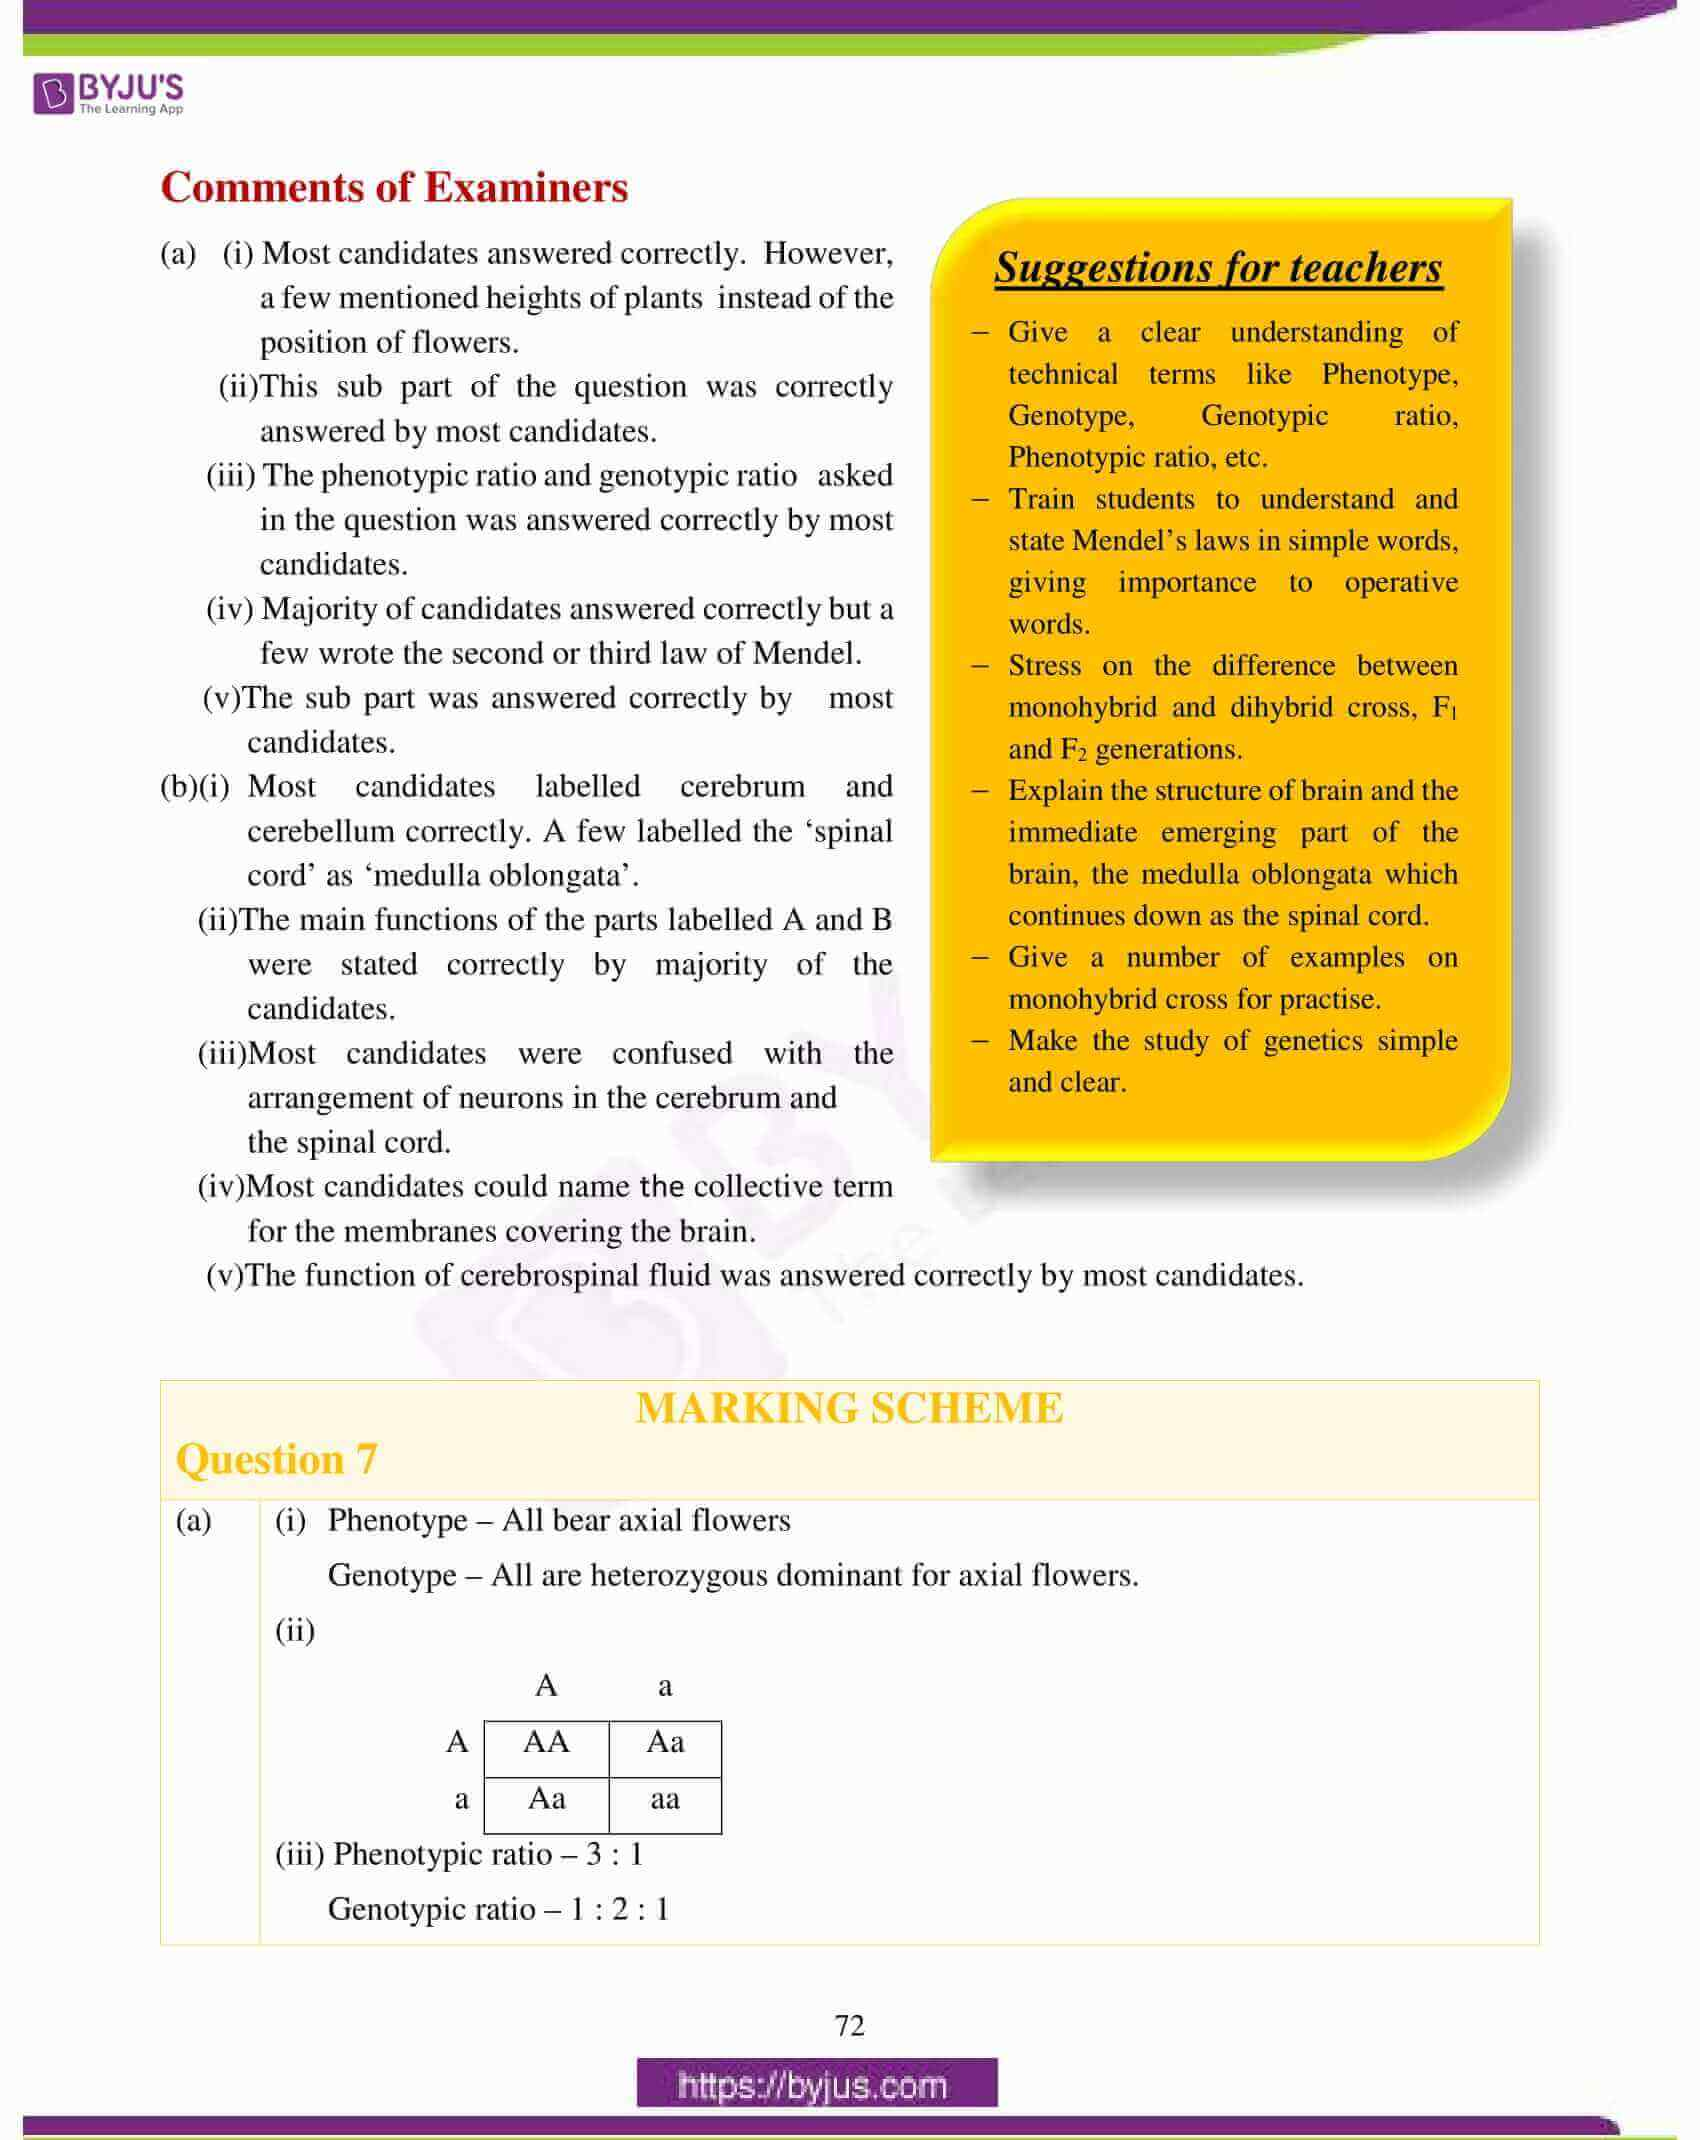 icse class 10 biology question paper solution 2017 22